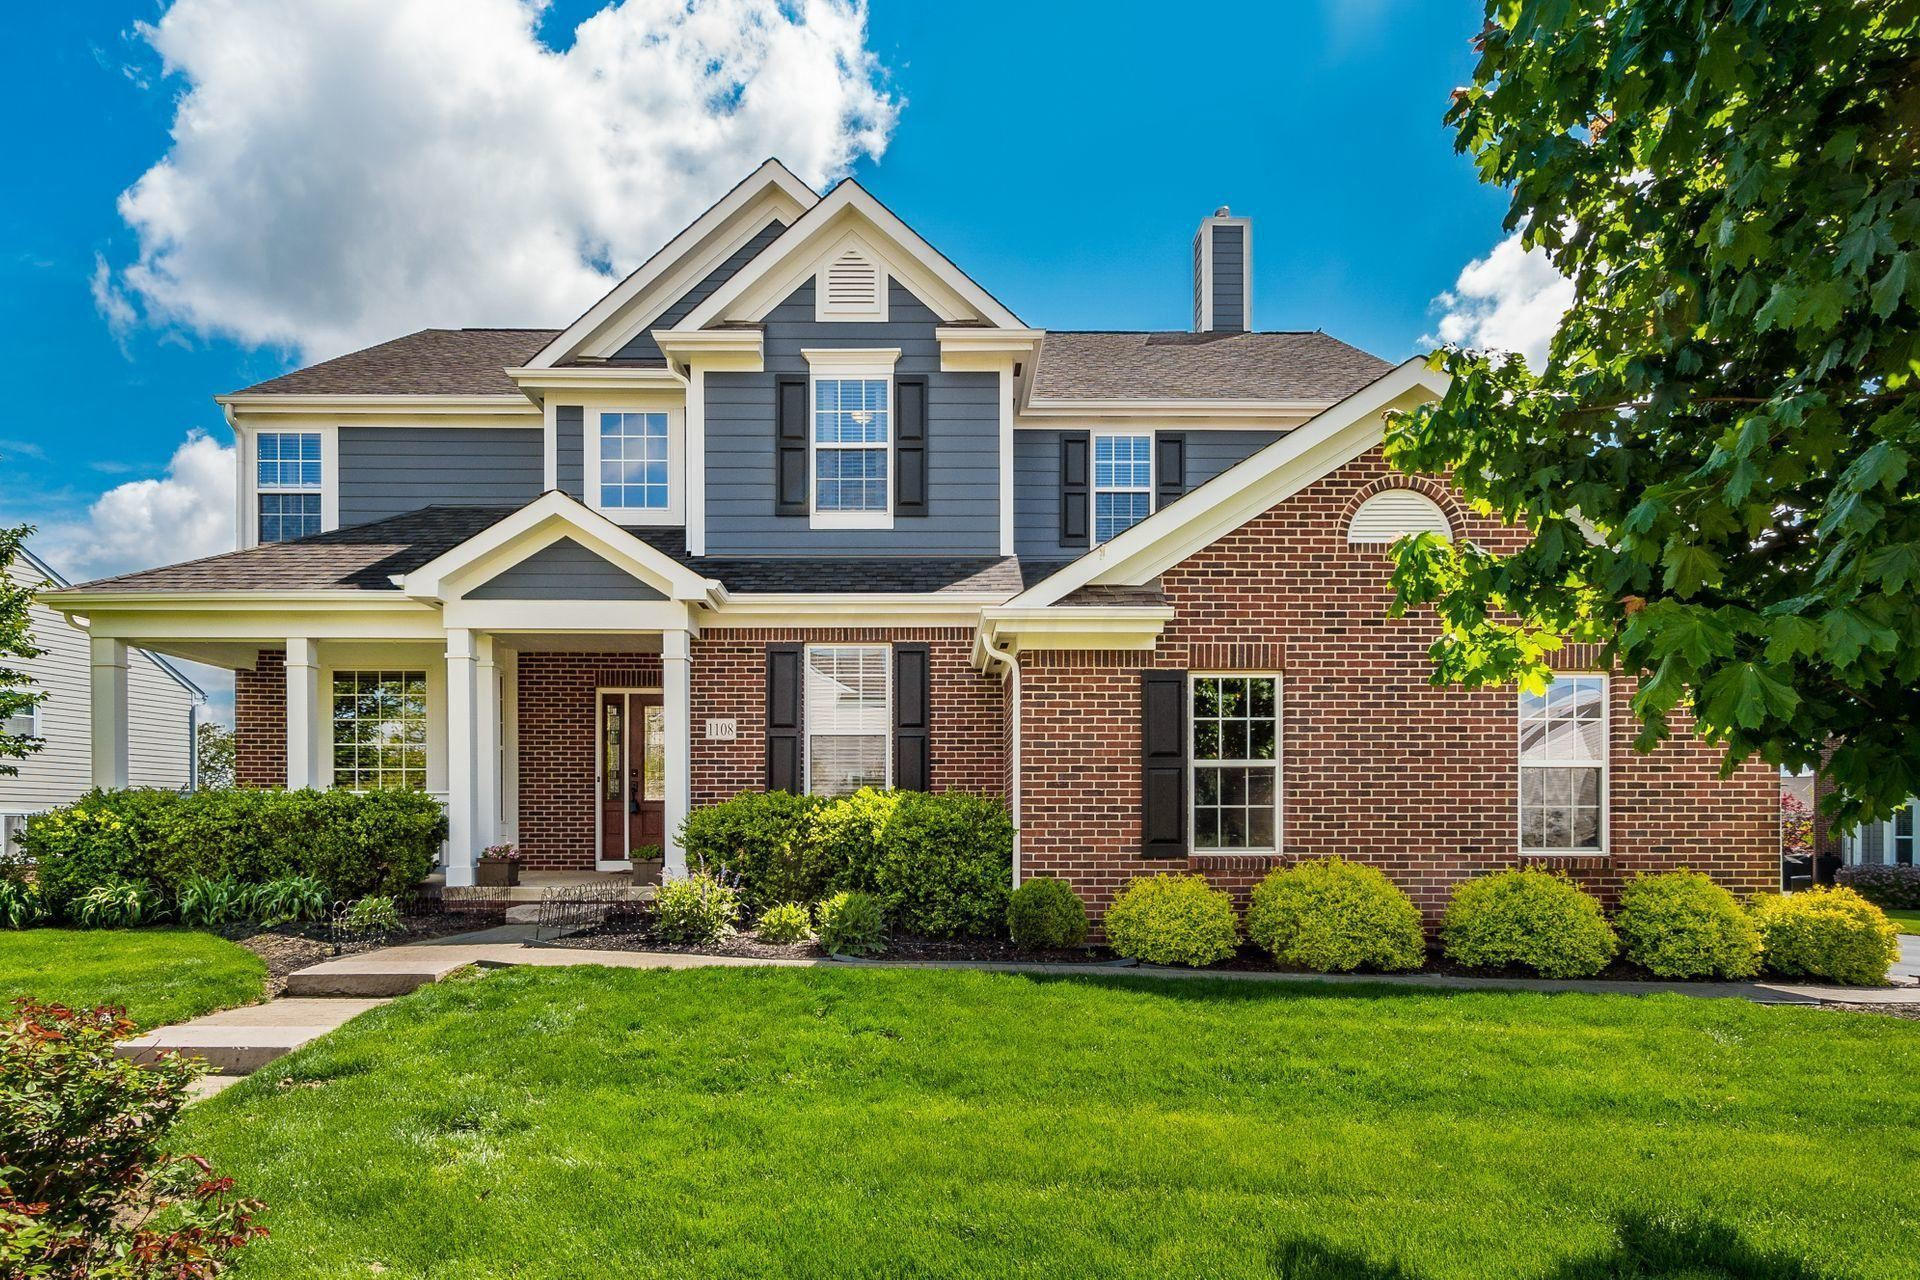 Photo of 1108 Carriage Valley Drive, Powell, OH 43065 (MLS # 221015428)